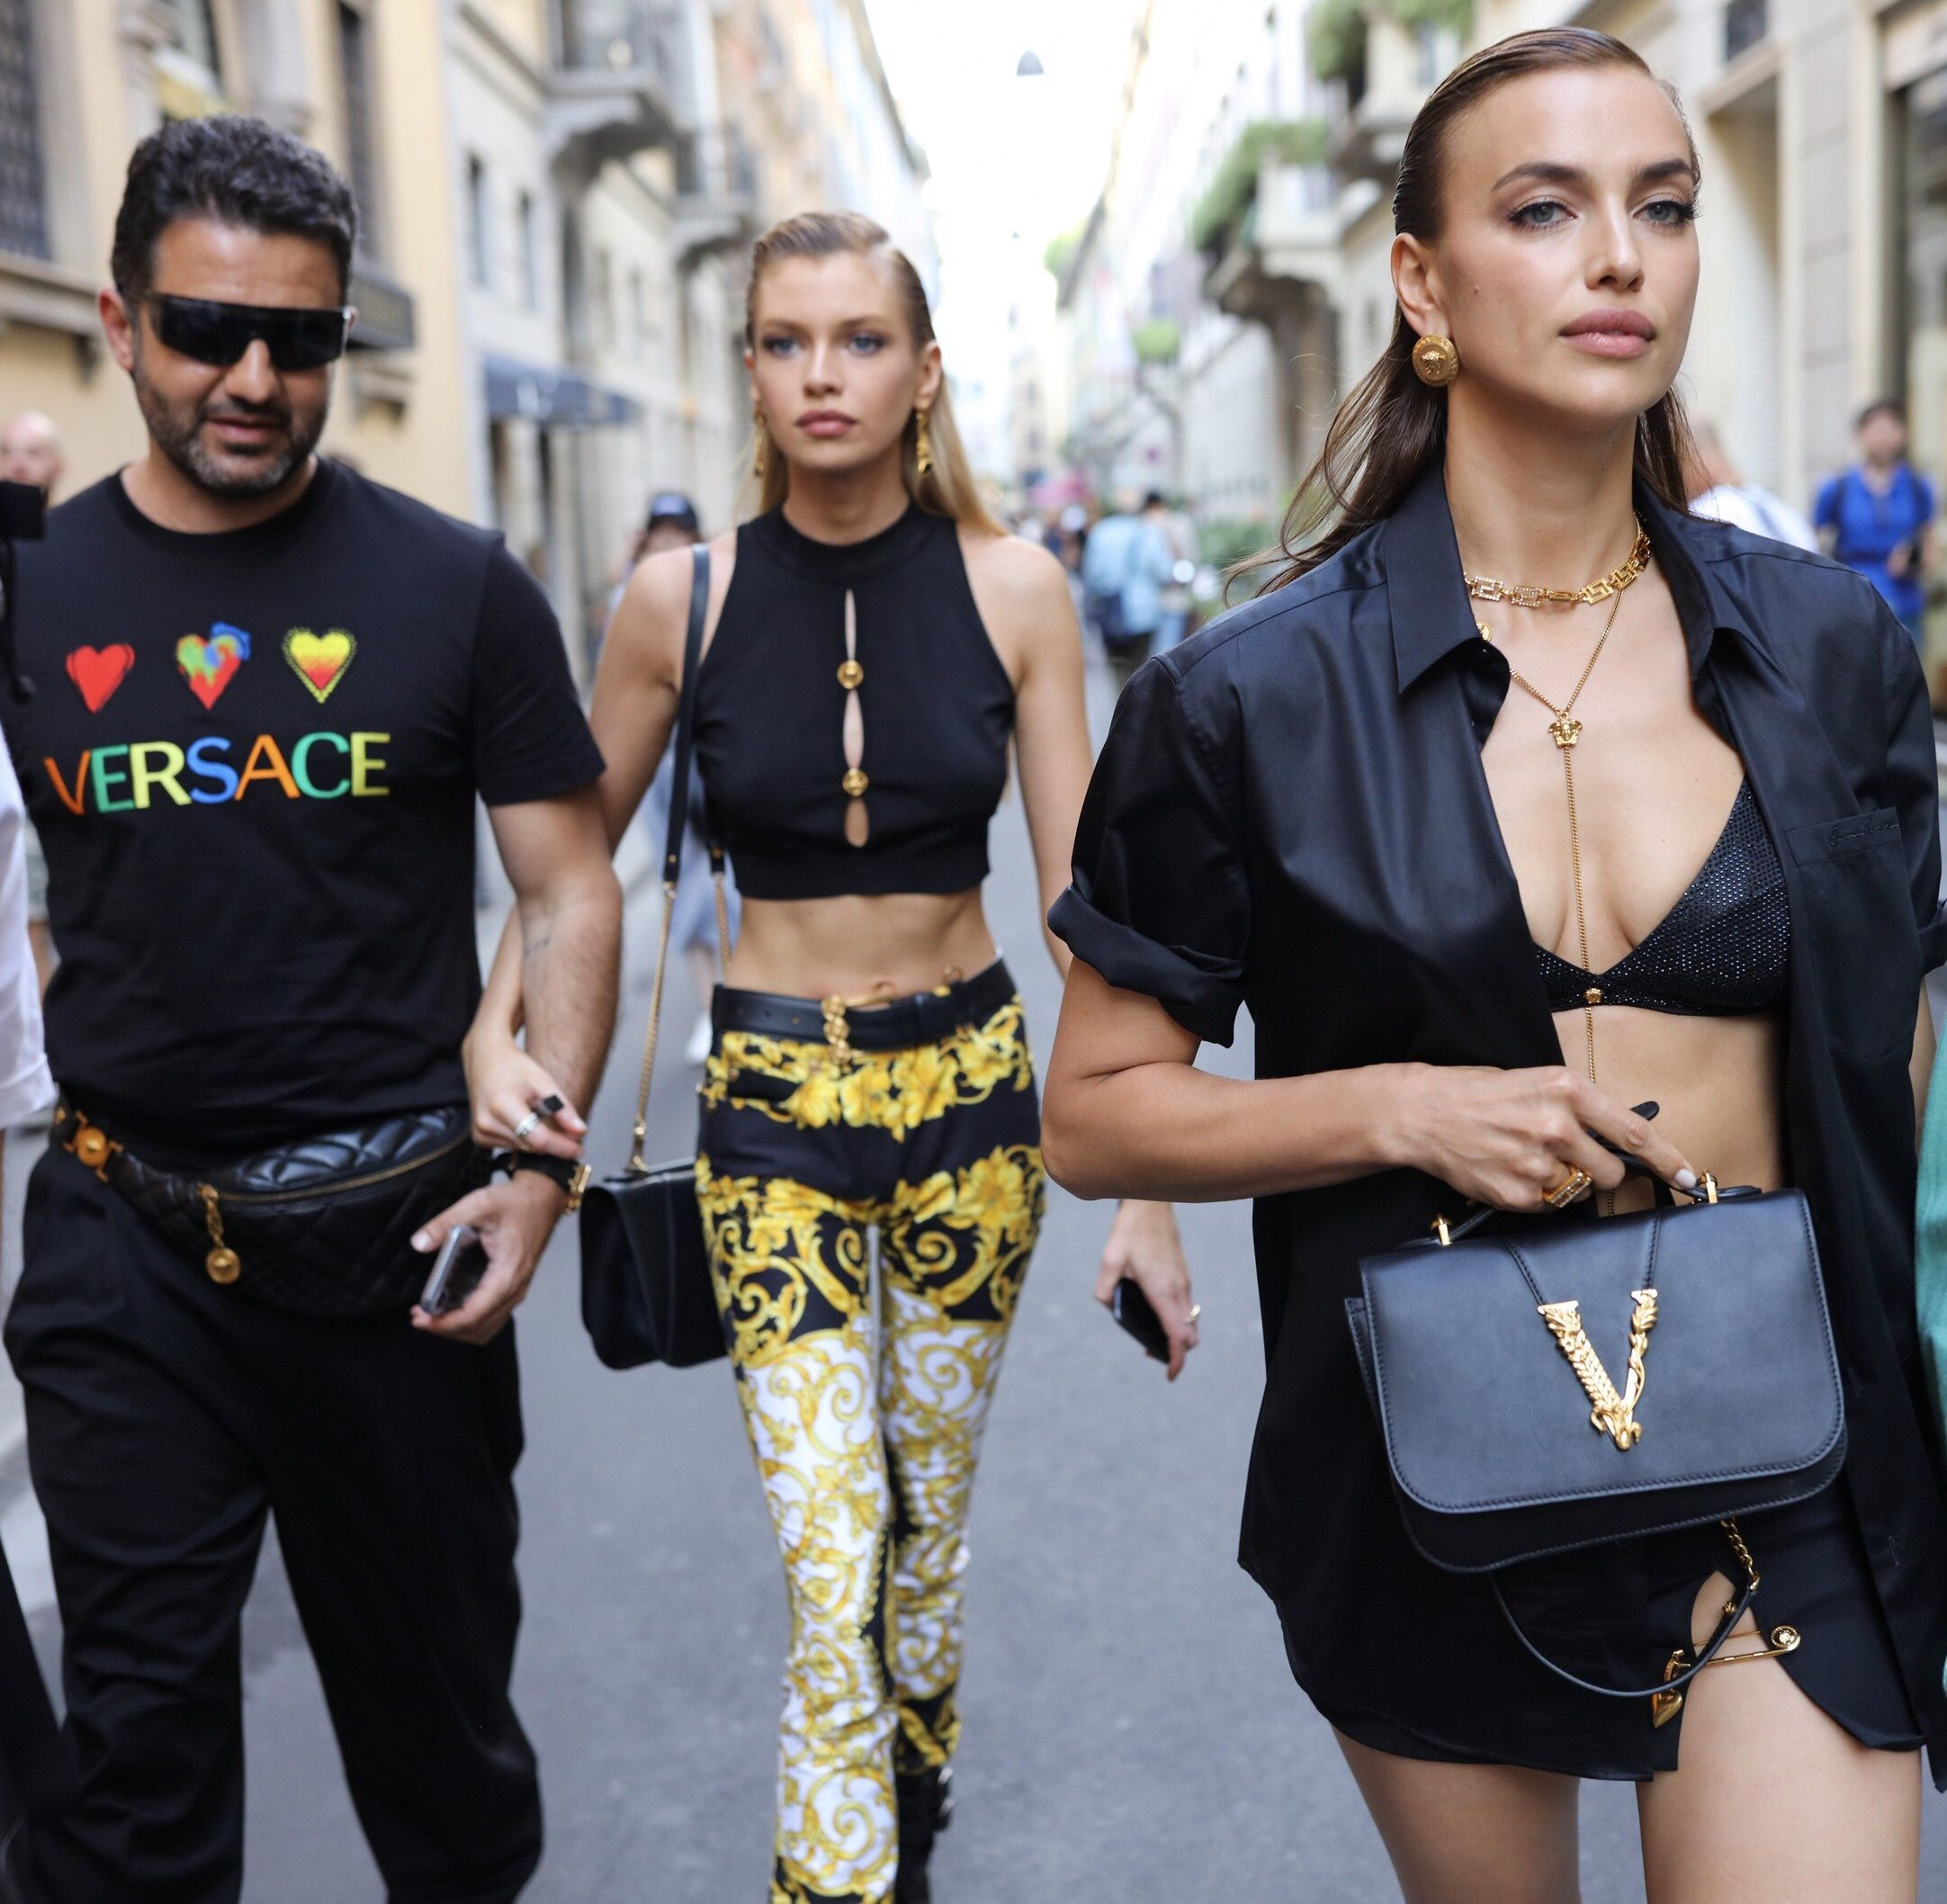 Versace Street Style At Milan Spring 2020 Menswear Shows Featuring